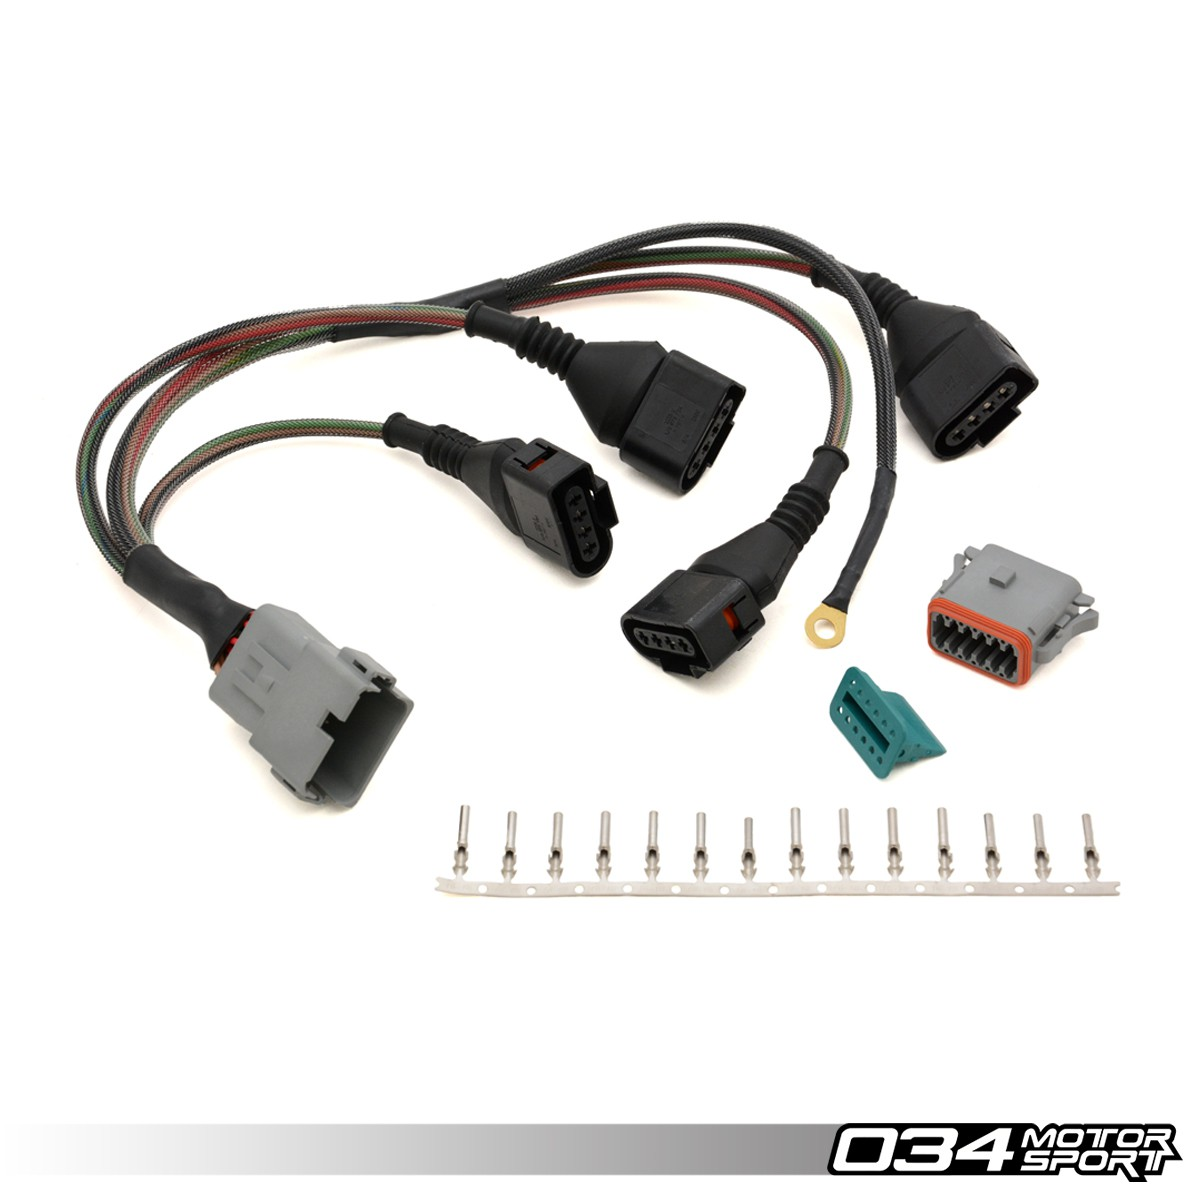 repair update harness audi volkswagen 18t with 4 wire coils 034motorsport 034 701 0004 2 repair update harness, audi volkswagen 1 8t with 4 wire coils how to repair wire harness connector at bakdesigns.co